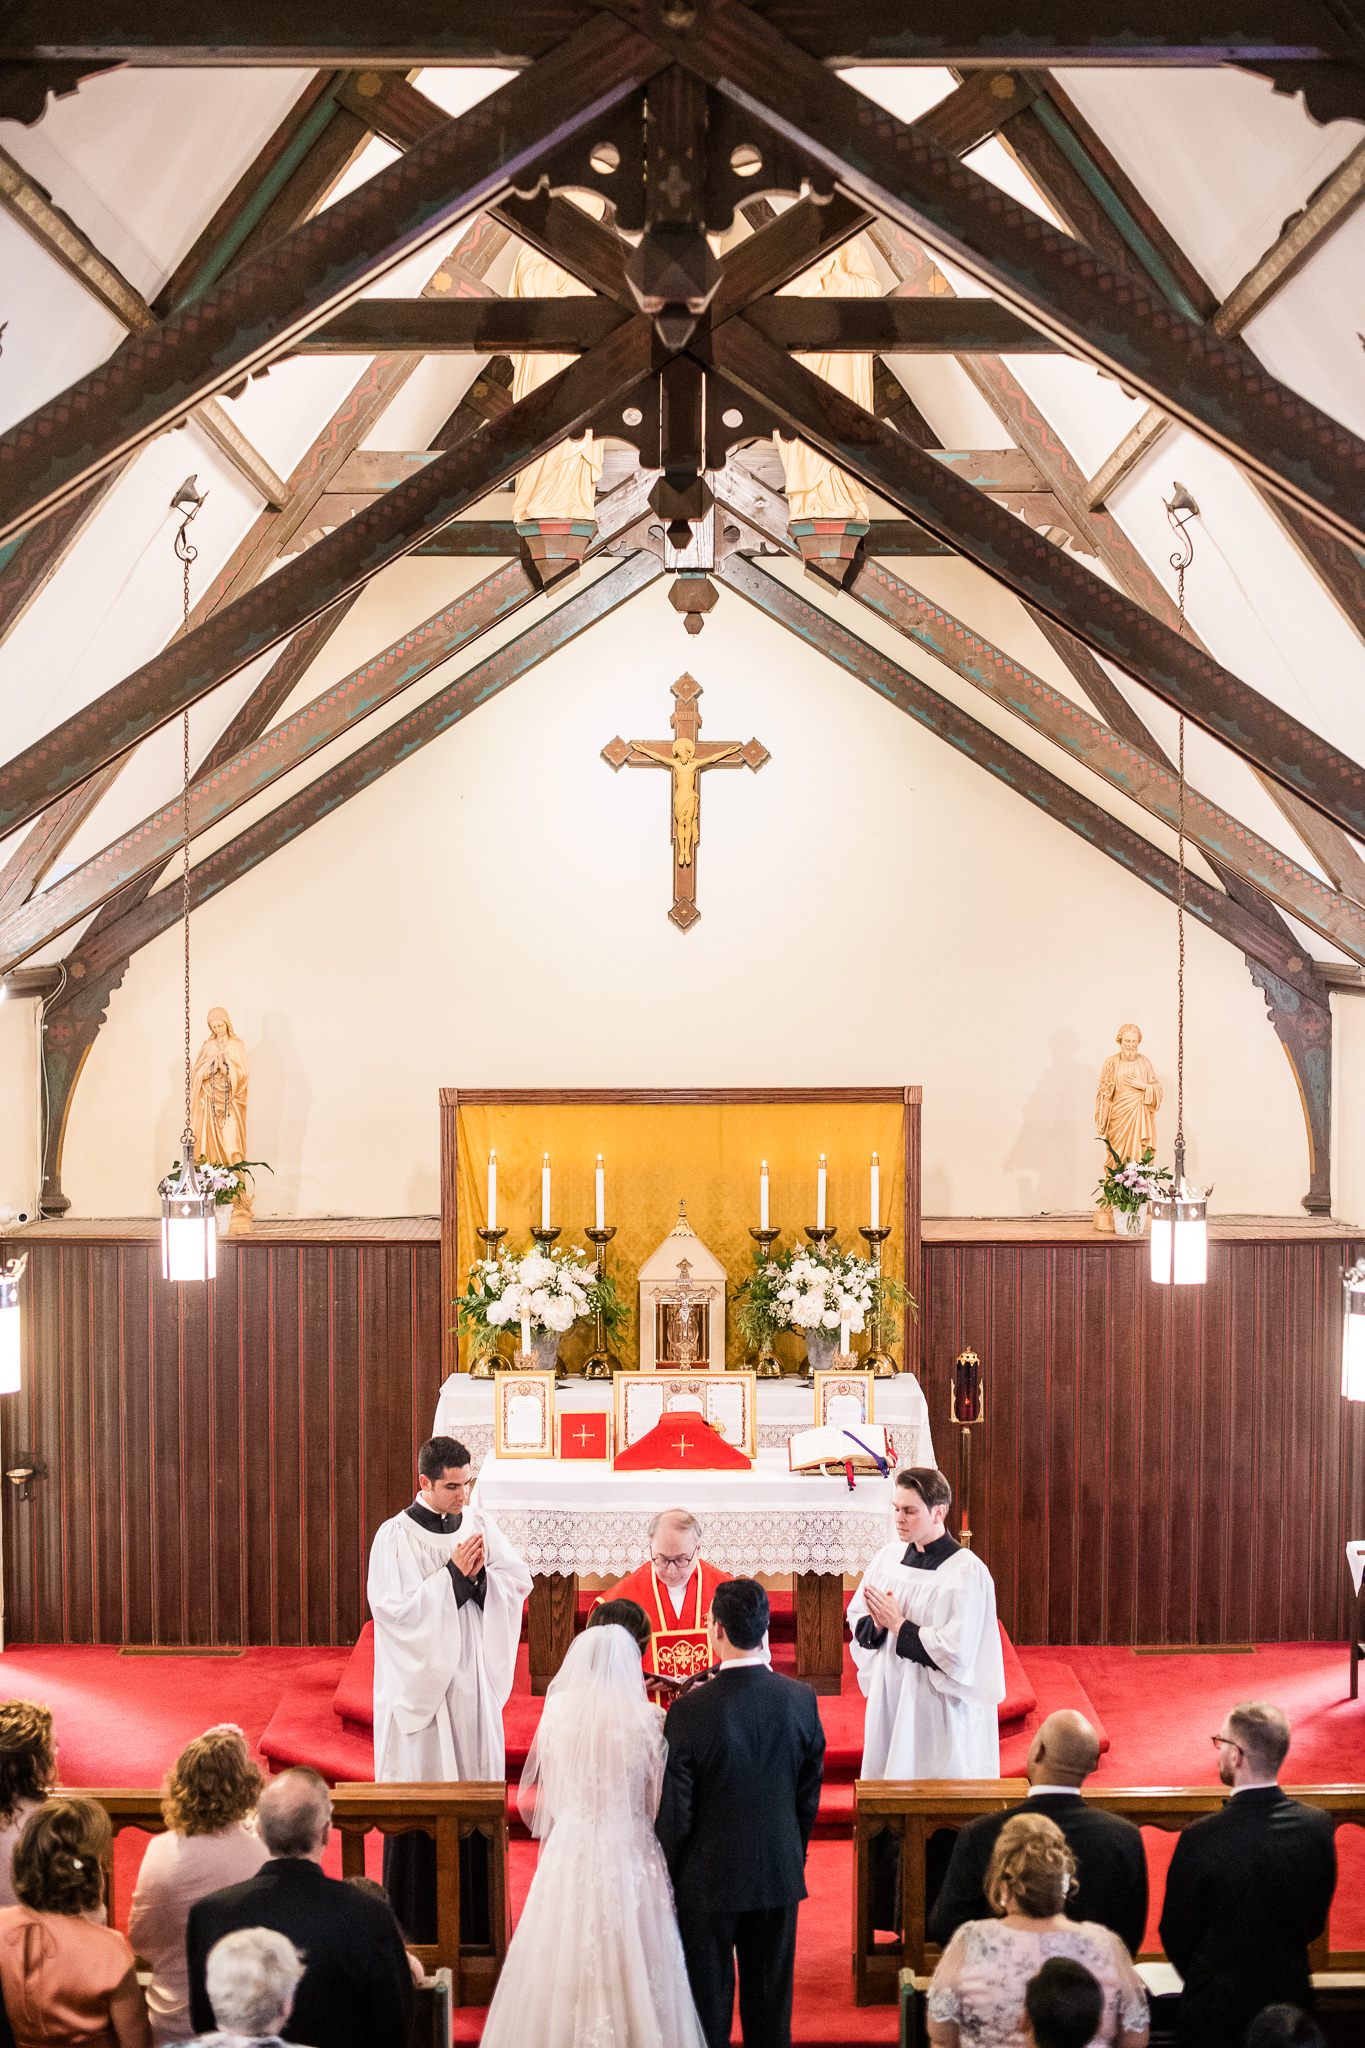 A bride and groom stand before the altar during a Catholic wedding ceremony at the Chapel of Immaculate Conception in Leesburg, Northern Virginia